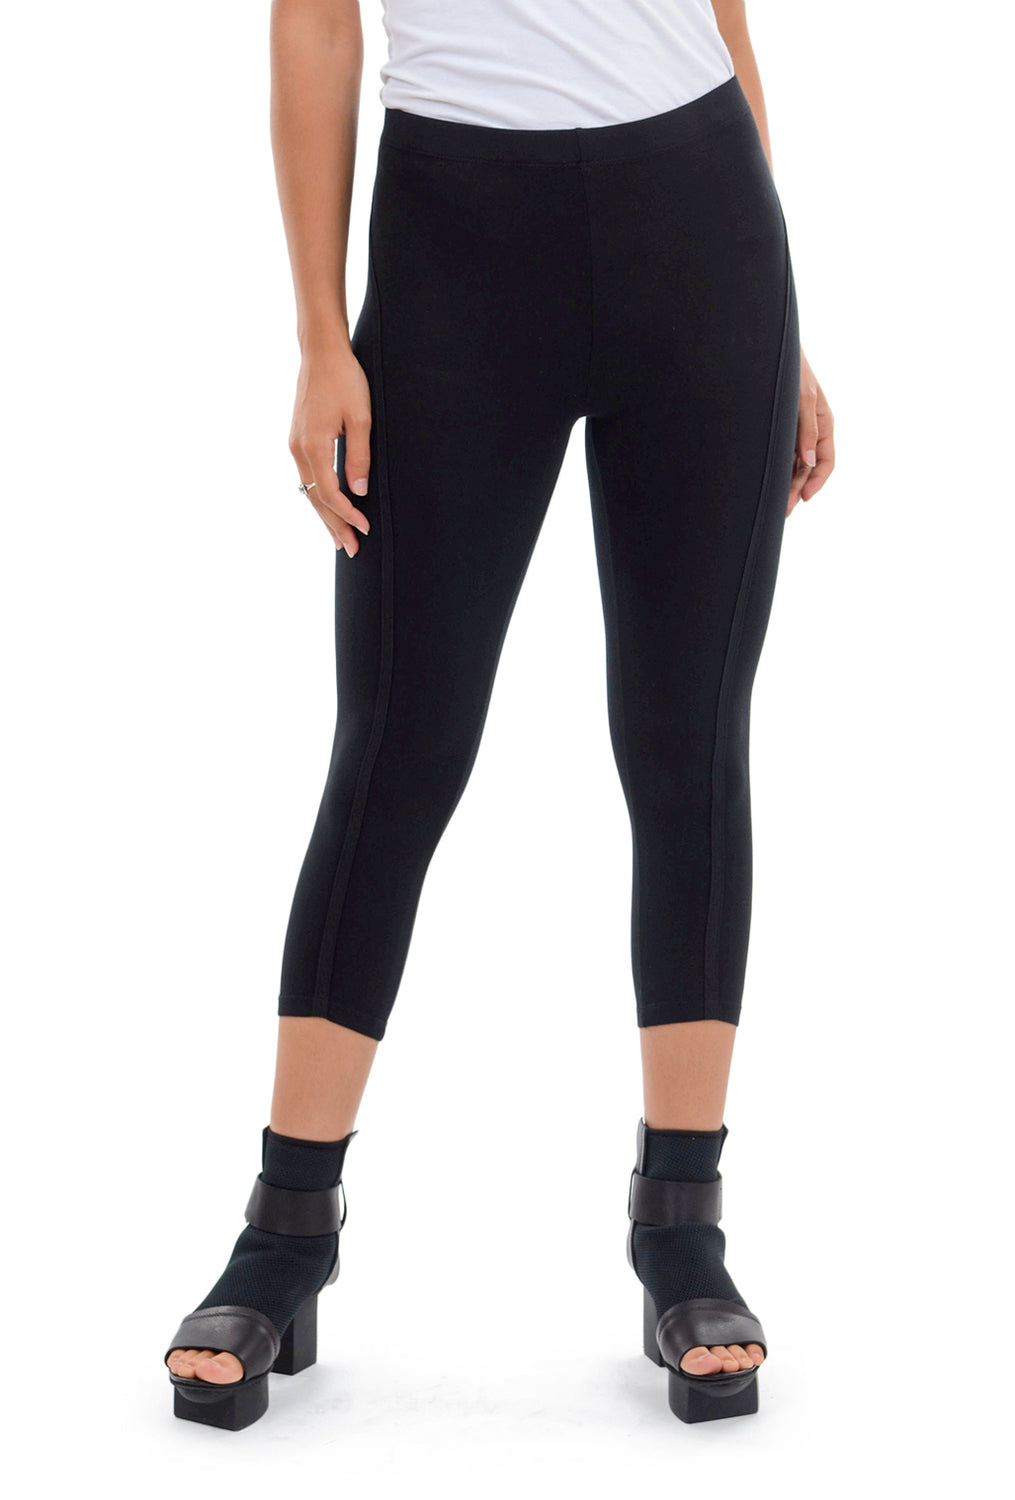 28fcf13f7fdc1 Prairie Underground Powerlines Leggings, Black – Evie Lou